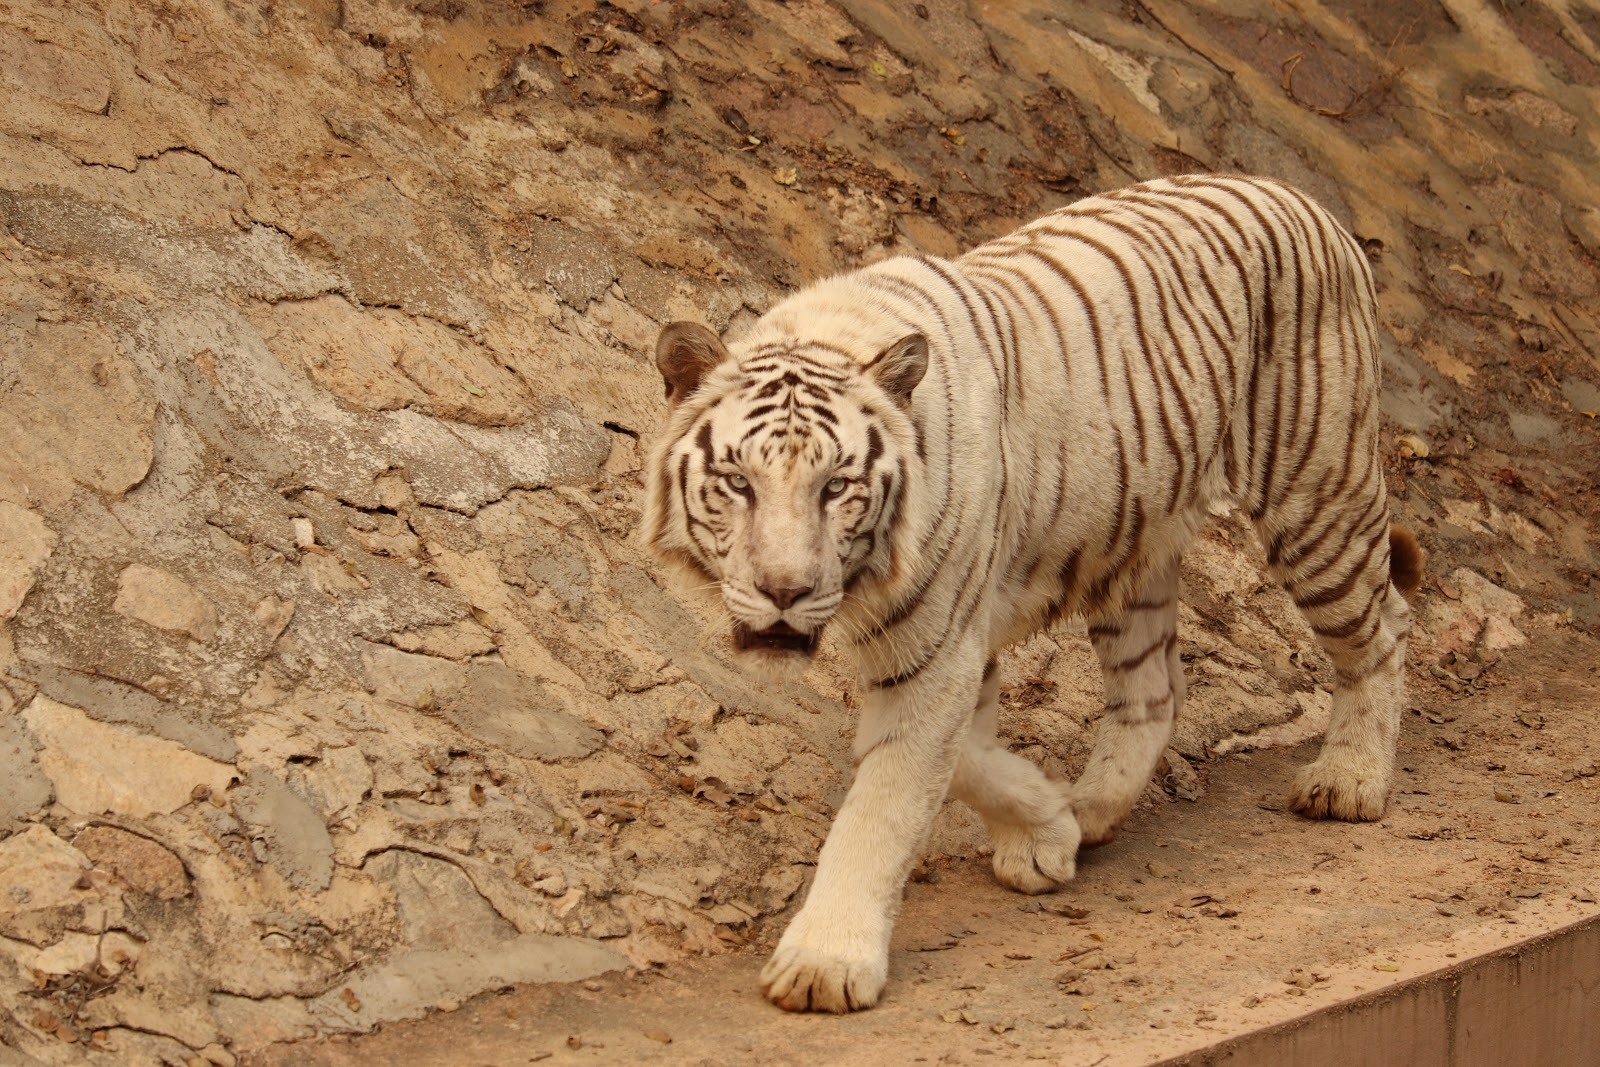 white-tiger-walking-through-images